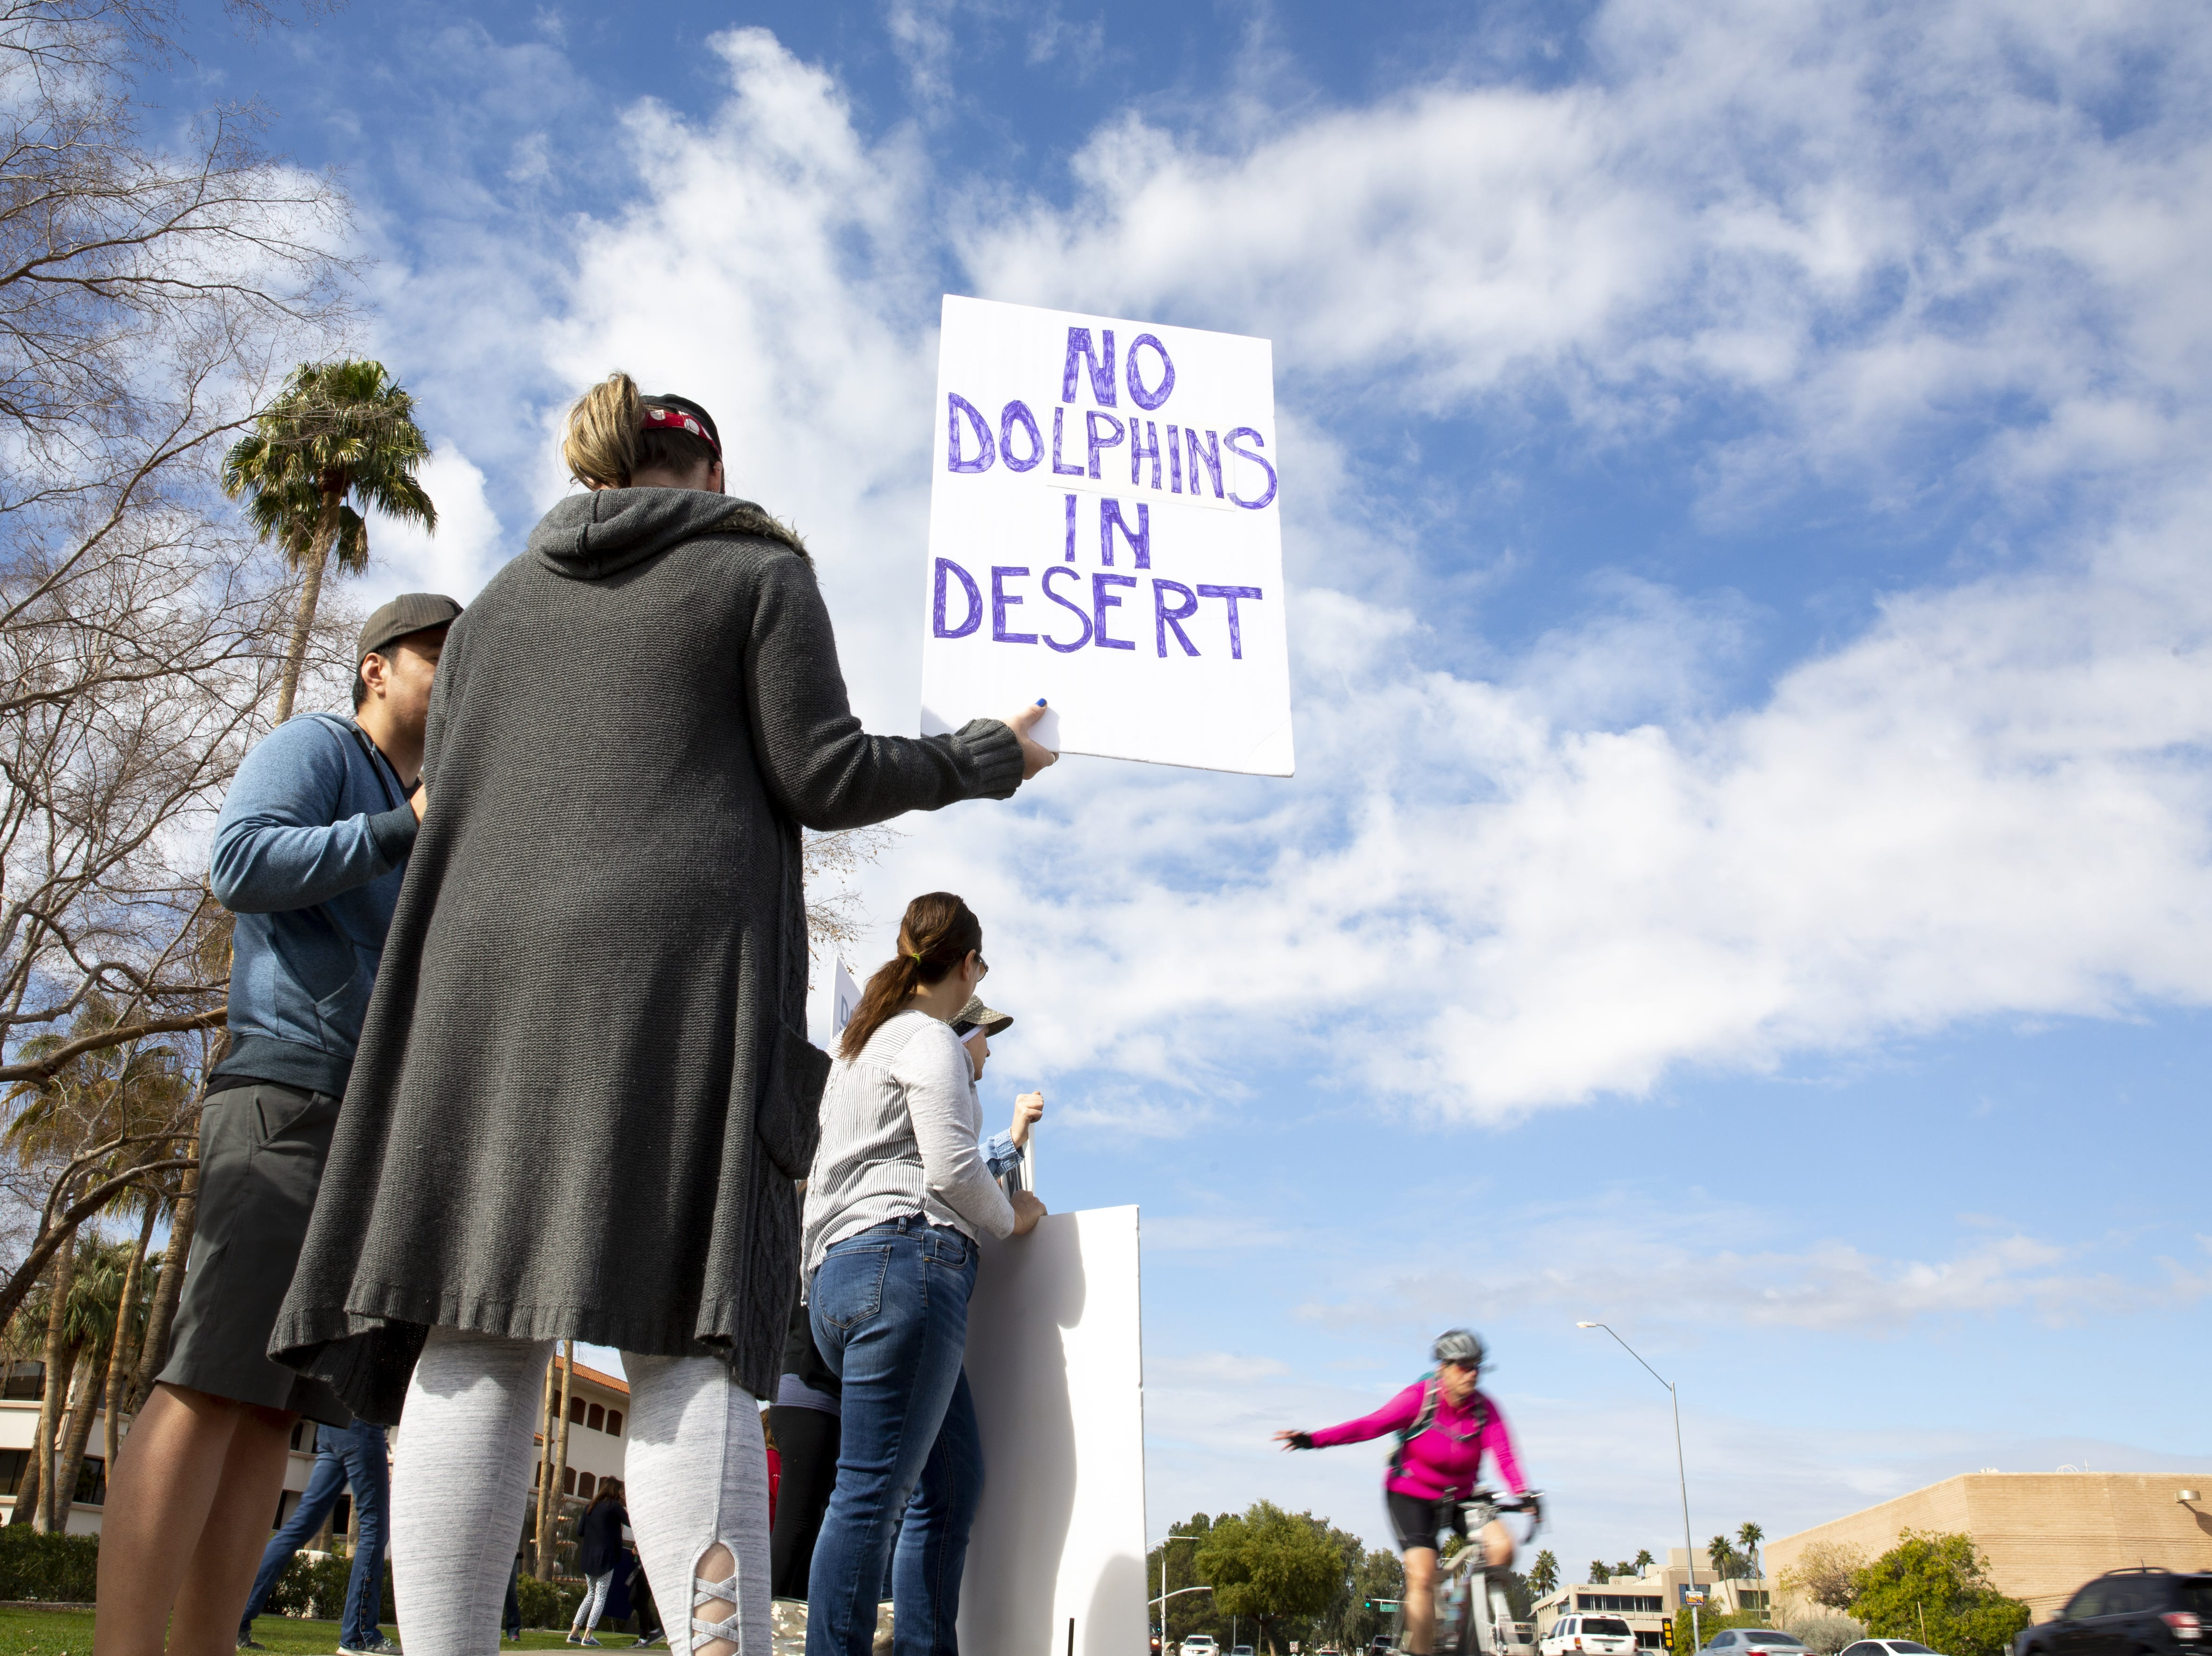 A passing bicyclist waves at people protesting against Dolphinaris at the intersection of E. Via de Ventura and N. Pima Road in Scottsdale on Feb. 2, 2019.